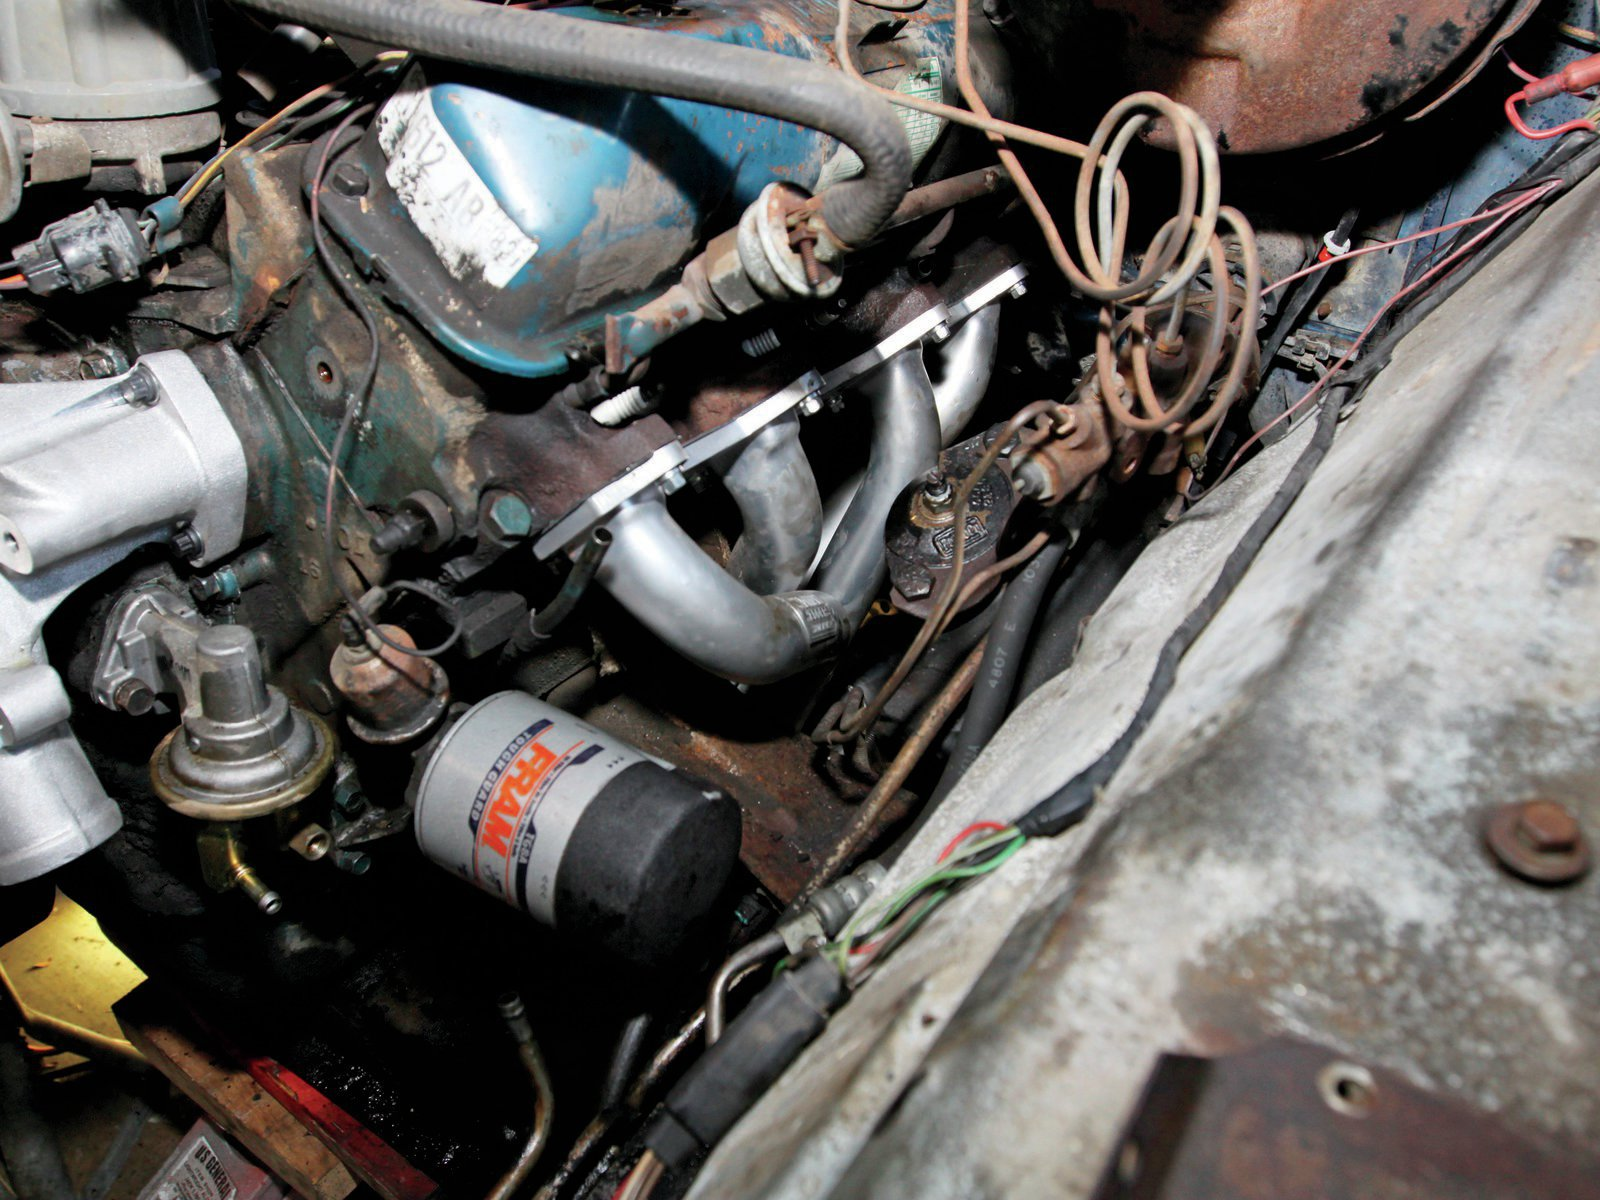 17. Before installing the first bolt I positioned the header gasket into place. Start the bolt with your left hand, and hold the gasket into place with your right. Tighten the bolts down evenly as you would torque a head gasket.